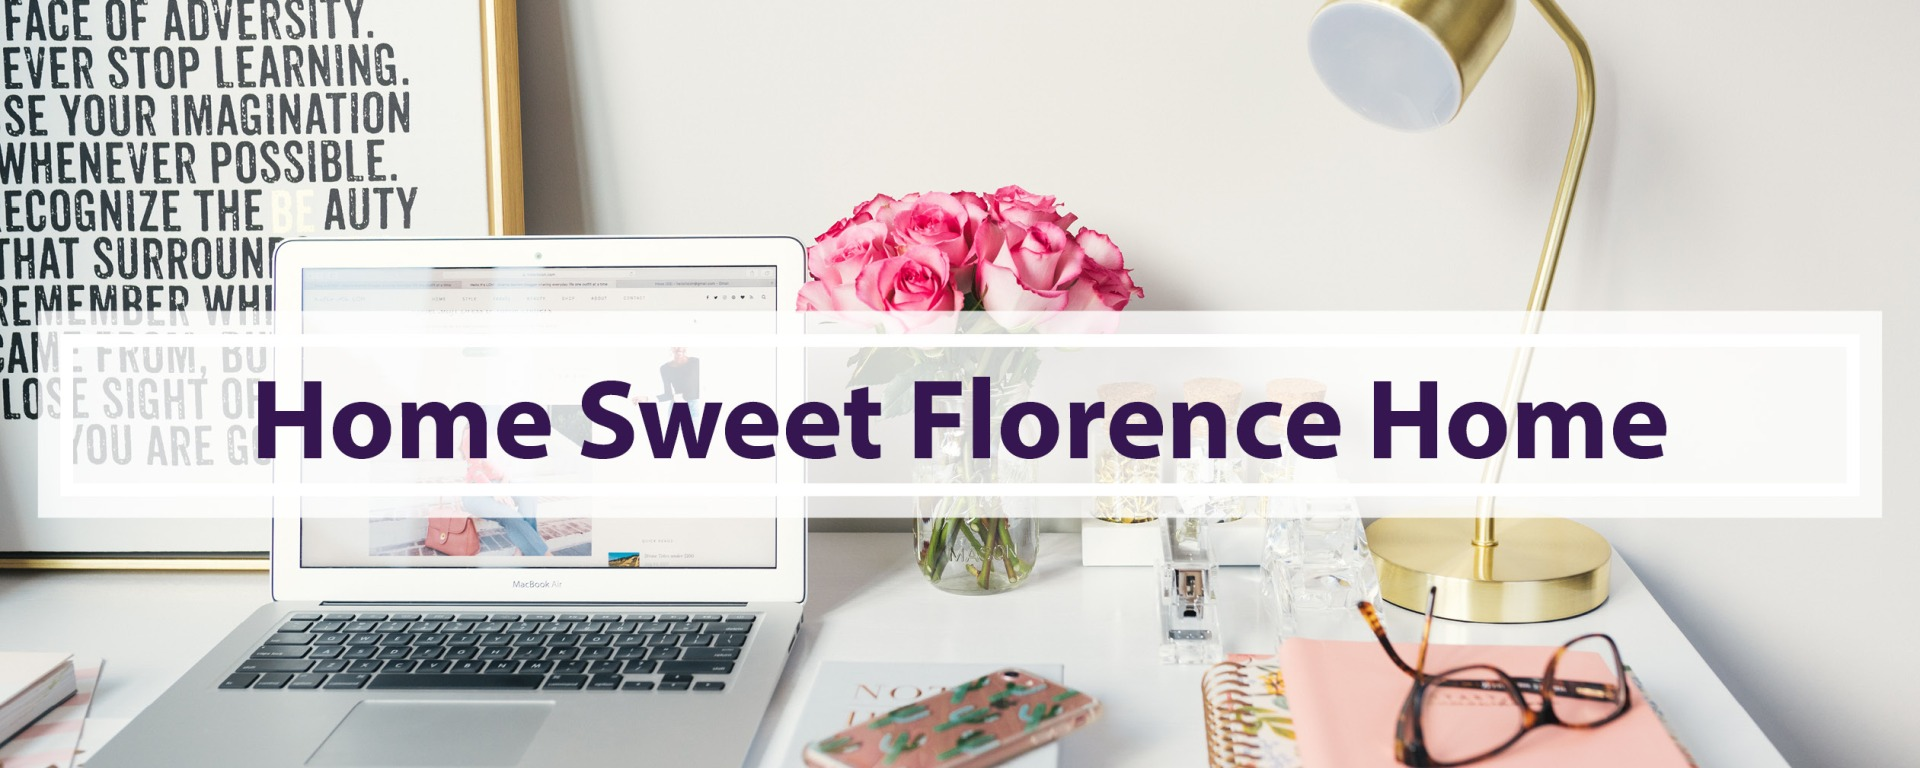 Make your abroad apartment feel like home Campus Florence